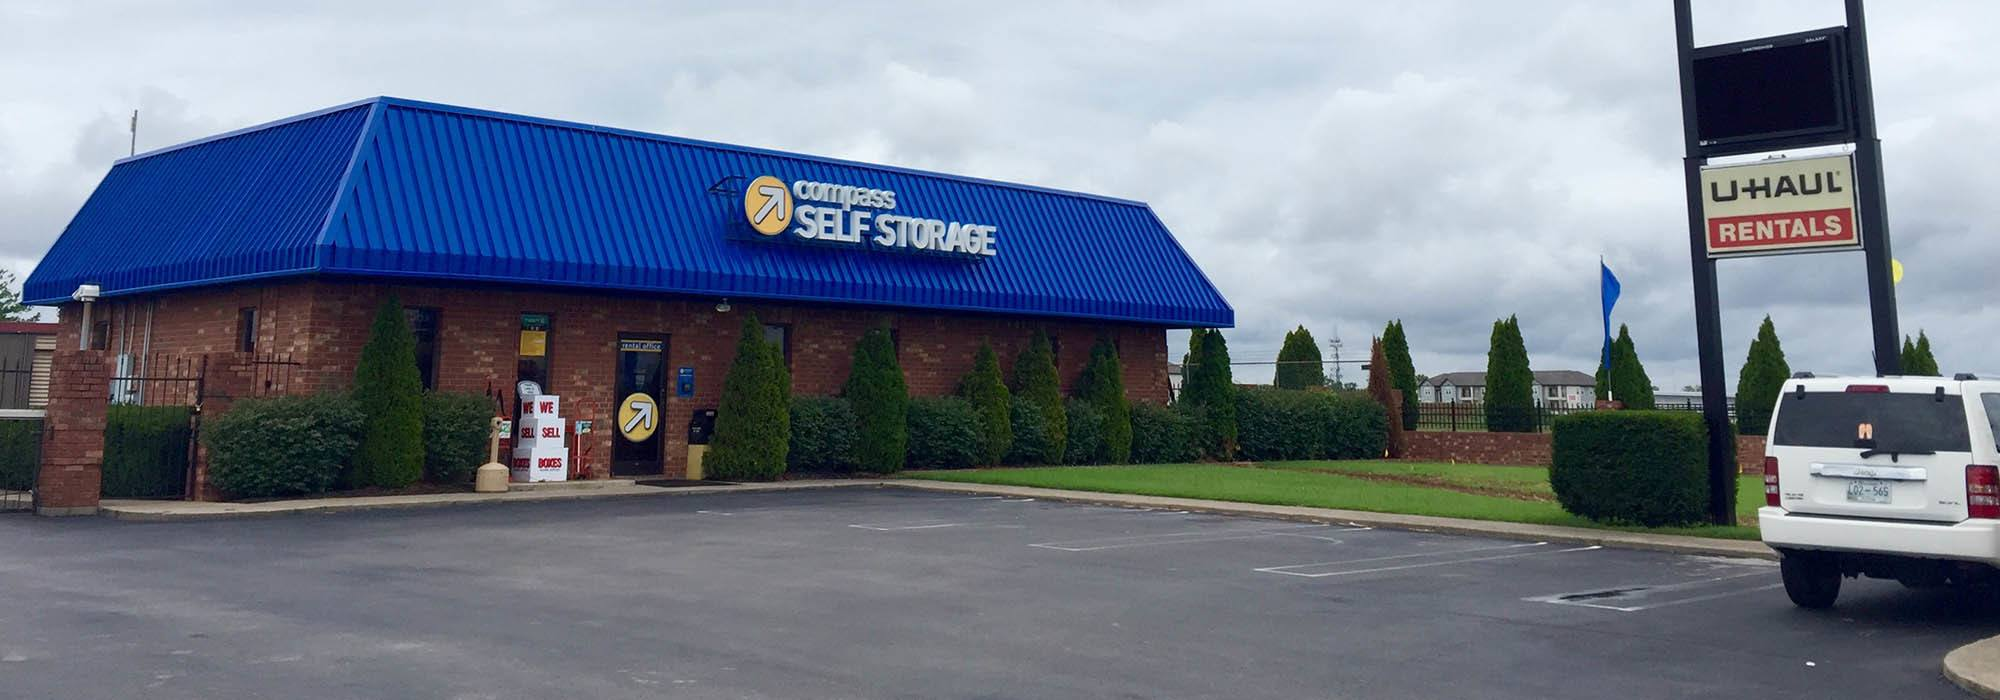 Self storage in Smyrna TN